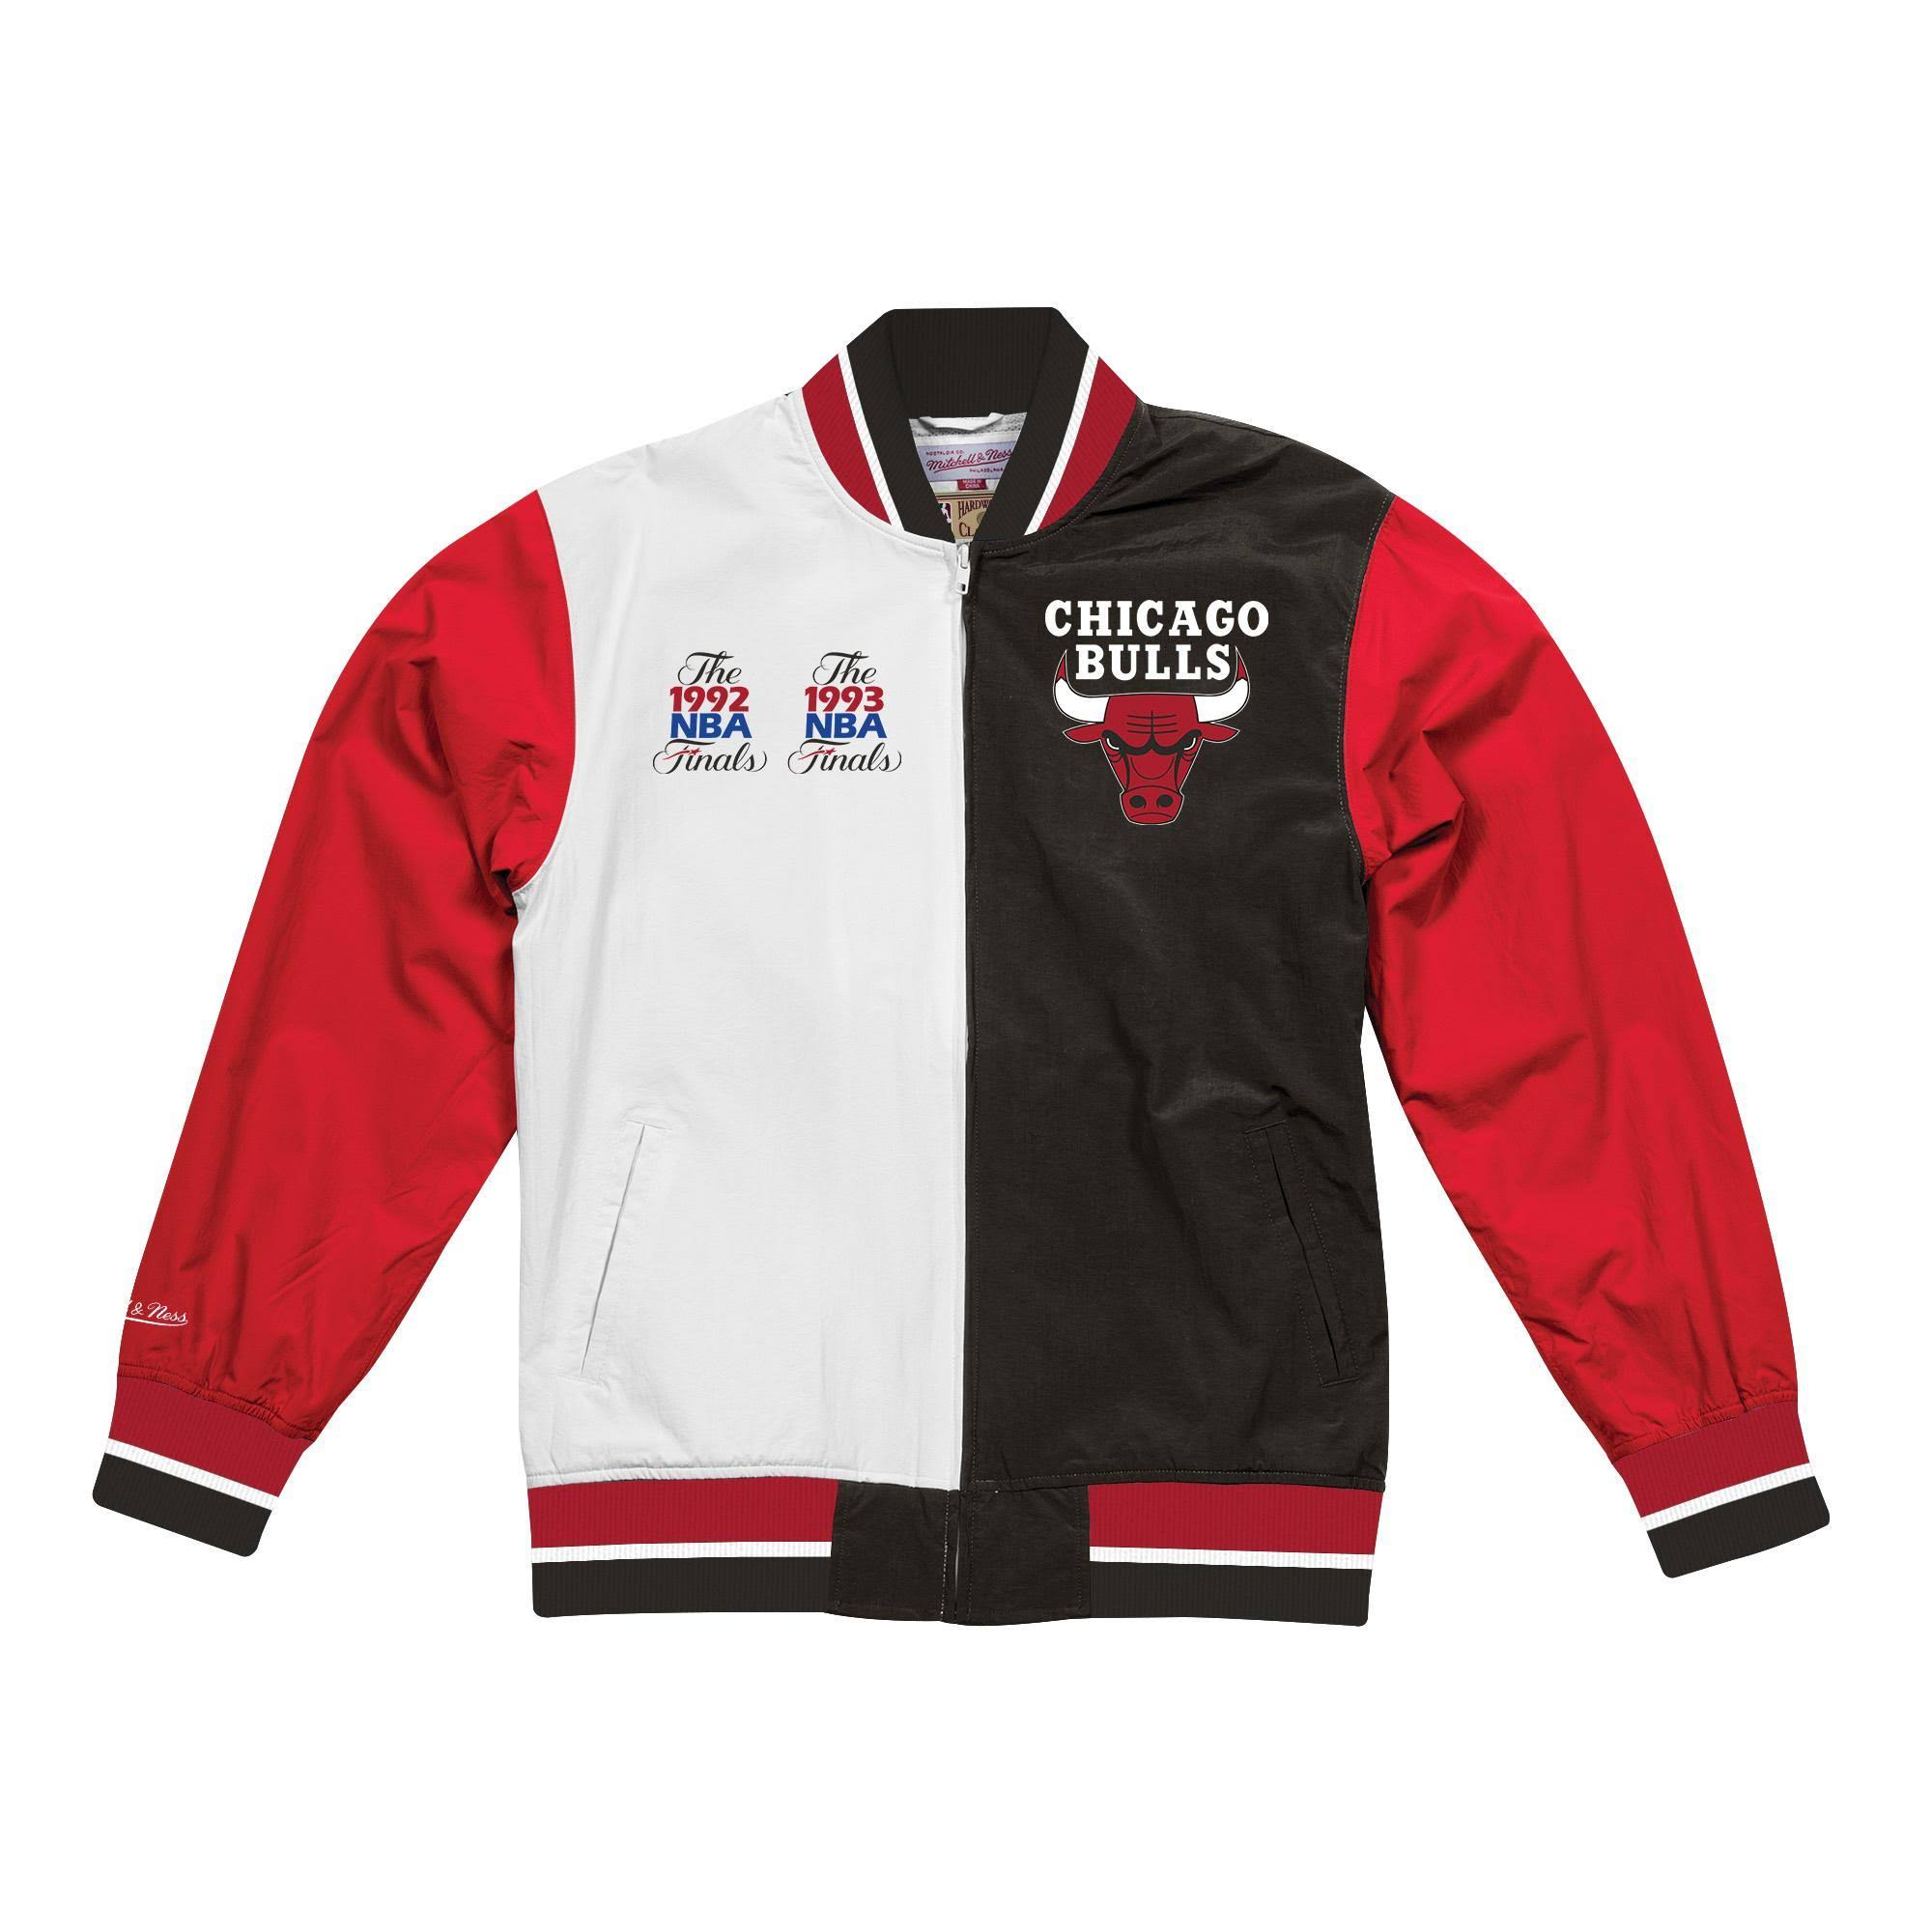 Chicago History amp; 0 Bulls Jacket Ness Team Up Mitchell Warm 2 z6dytUqtwx